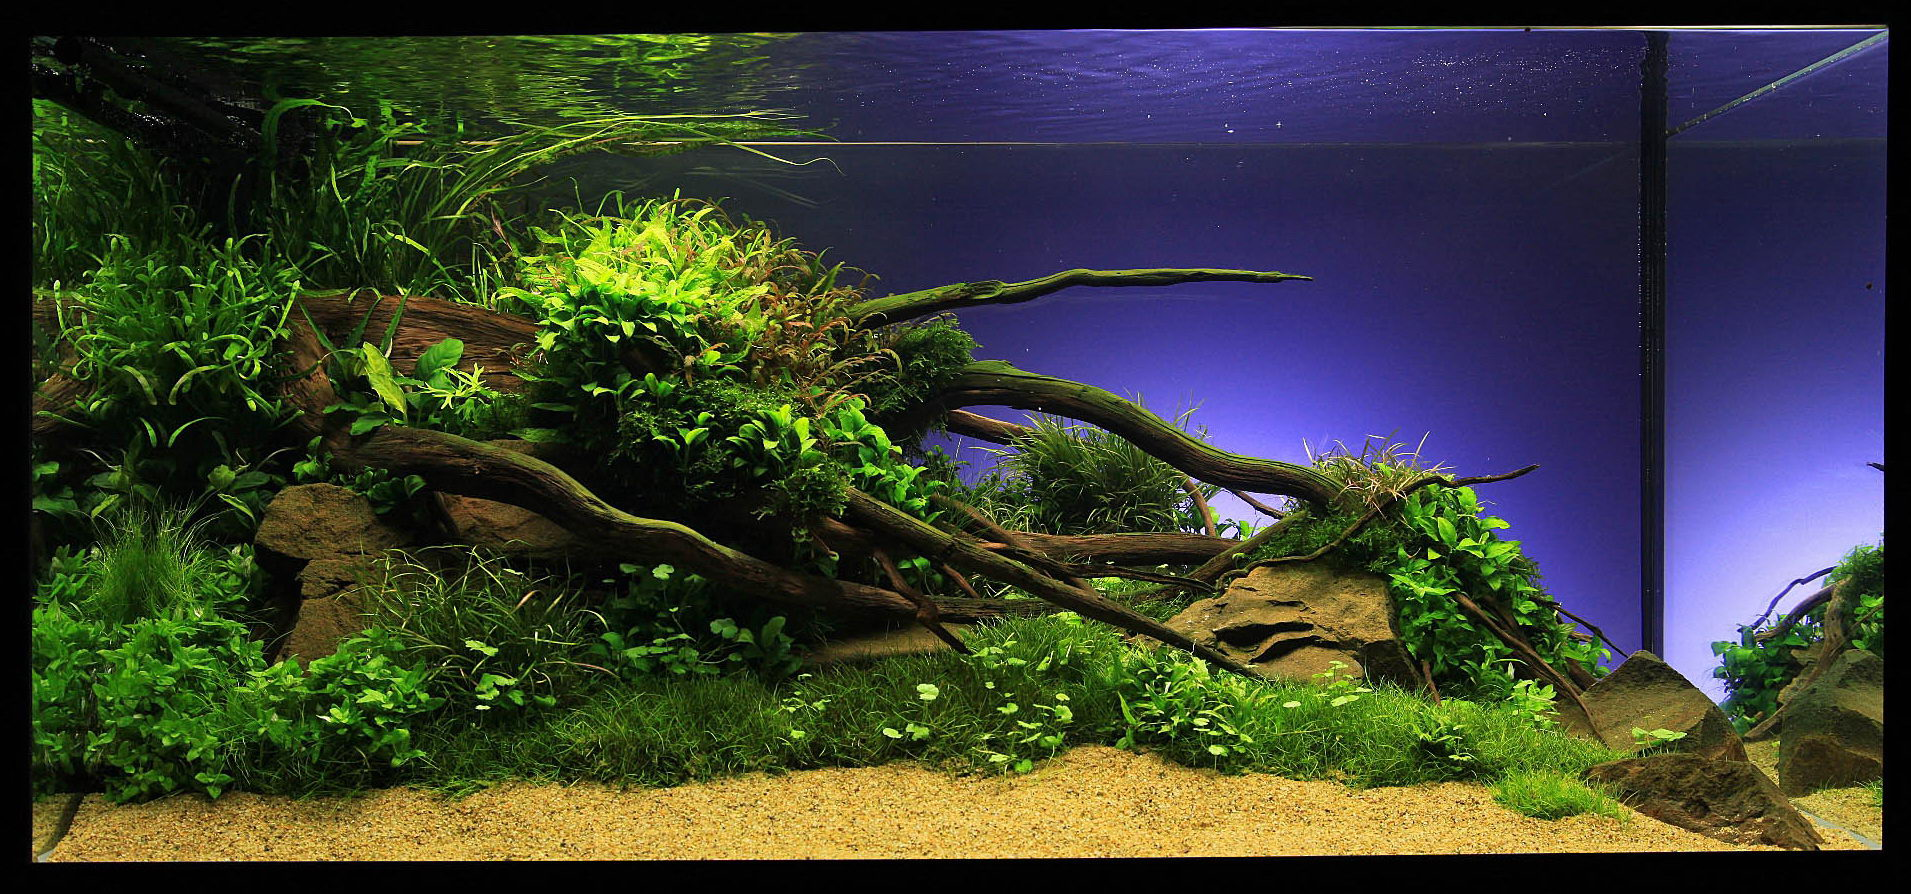 Marcel dykierek and aquascaping aqua rebell for Design aquarium